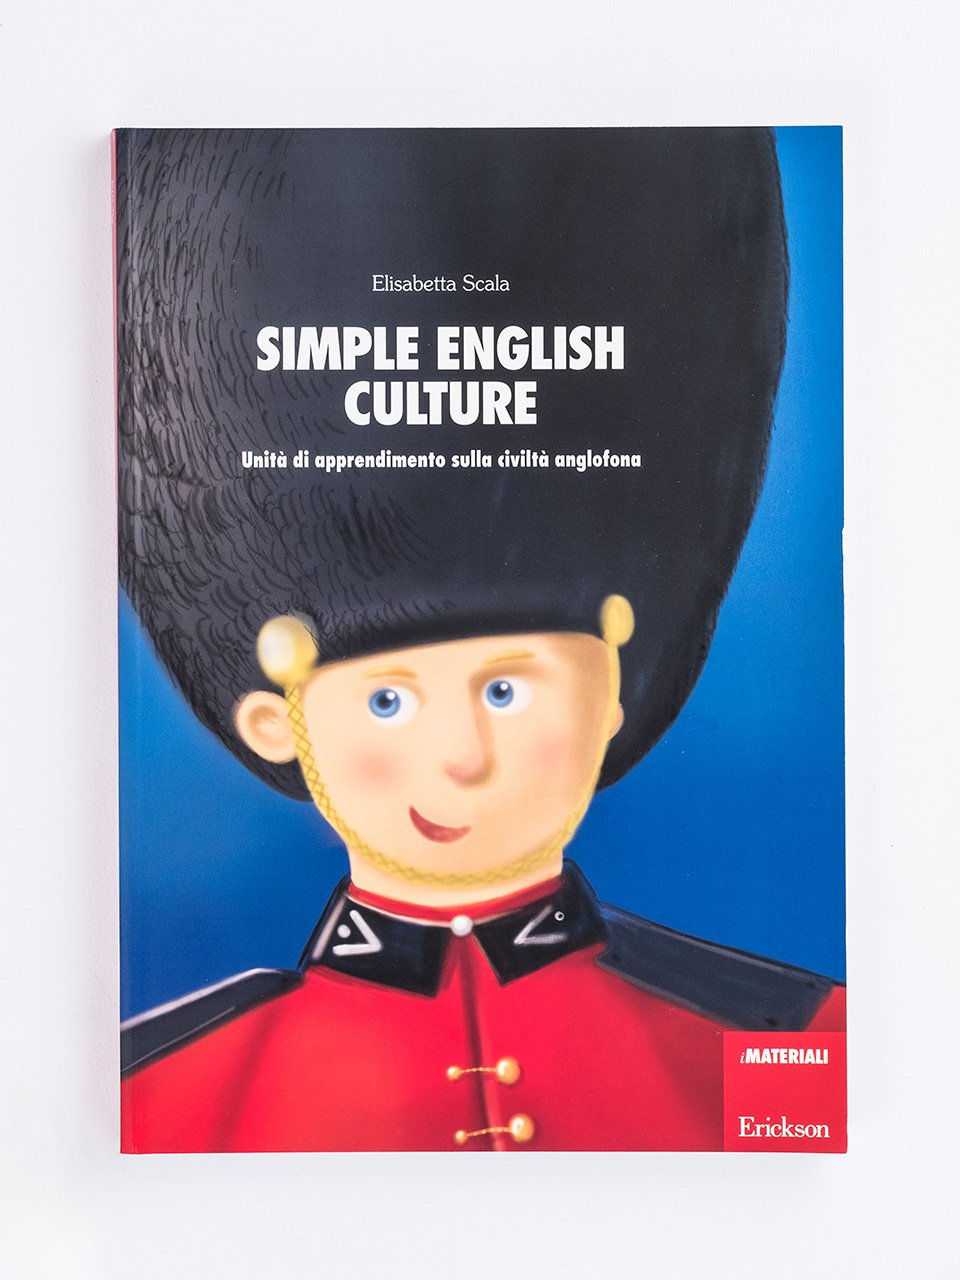 Simple English Culture - Français facile - Libri - App e software - Erickson